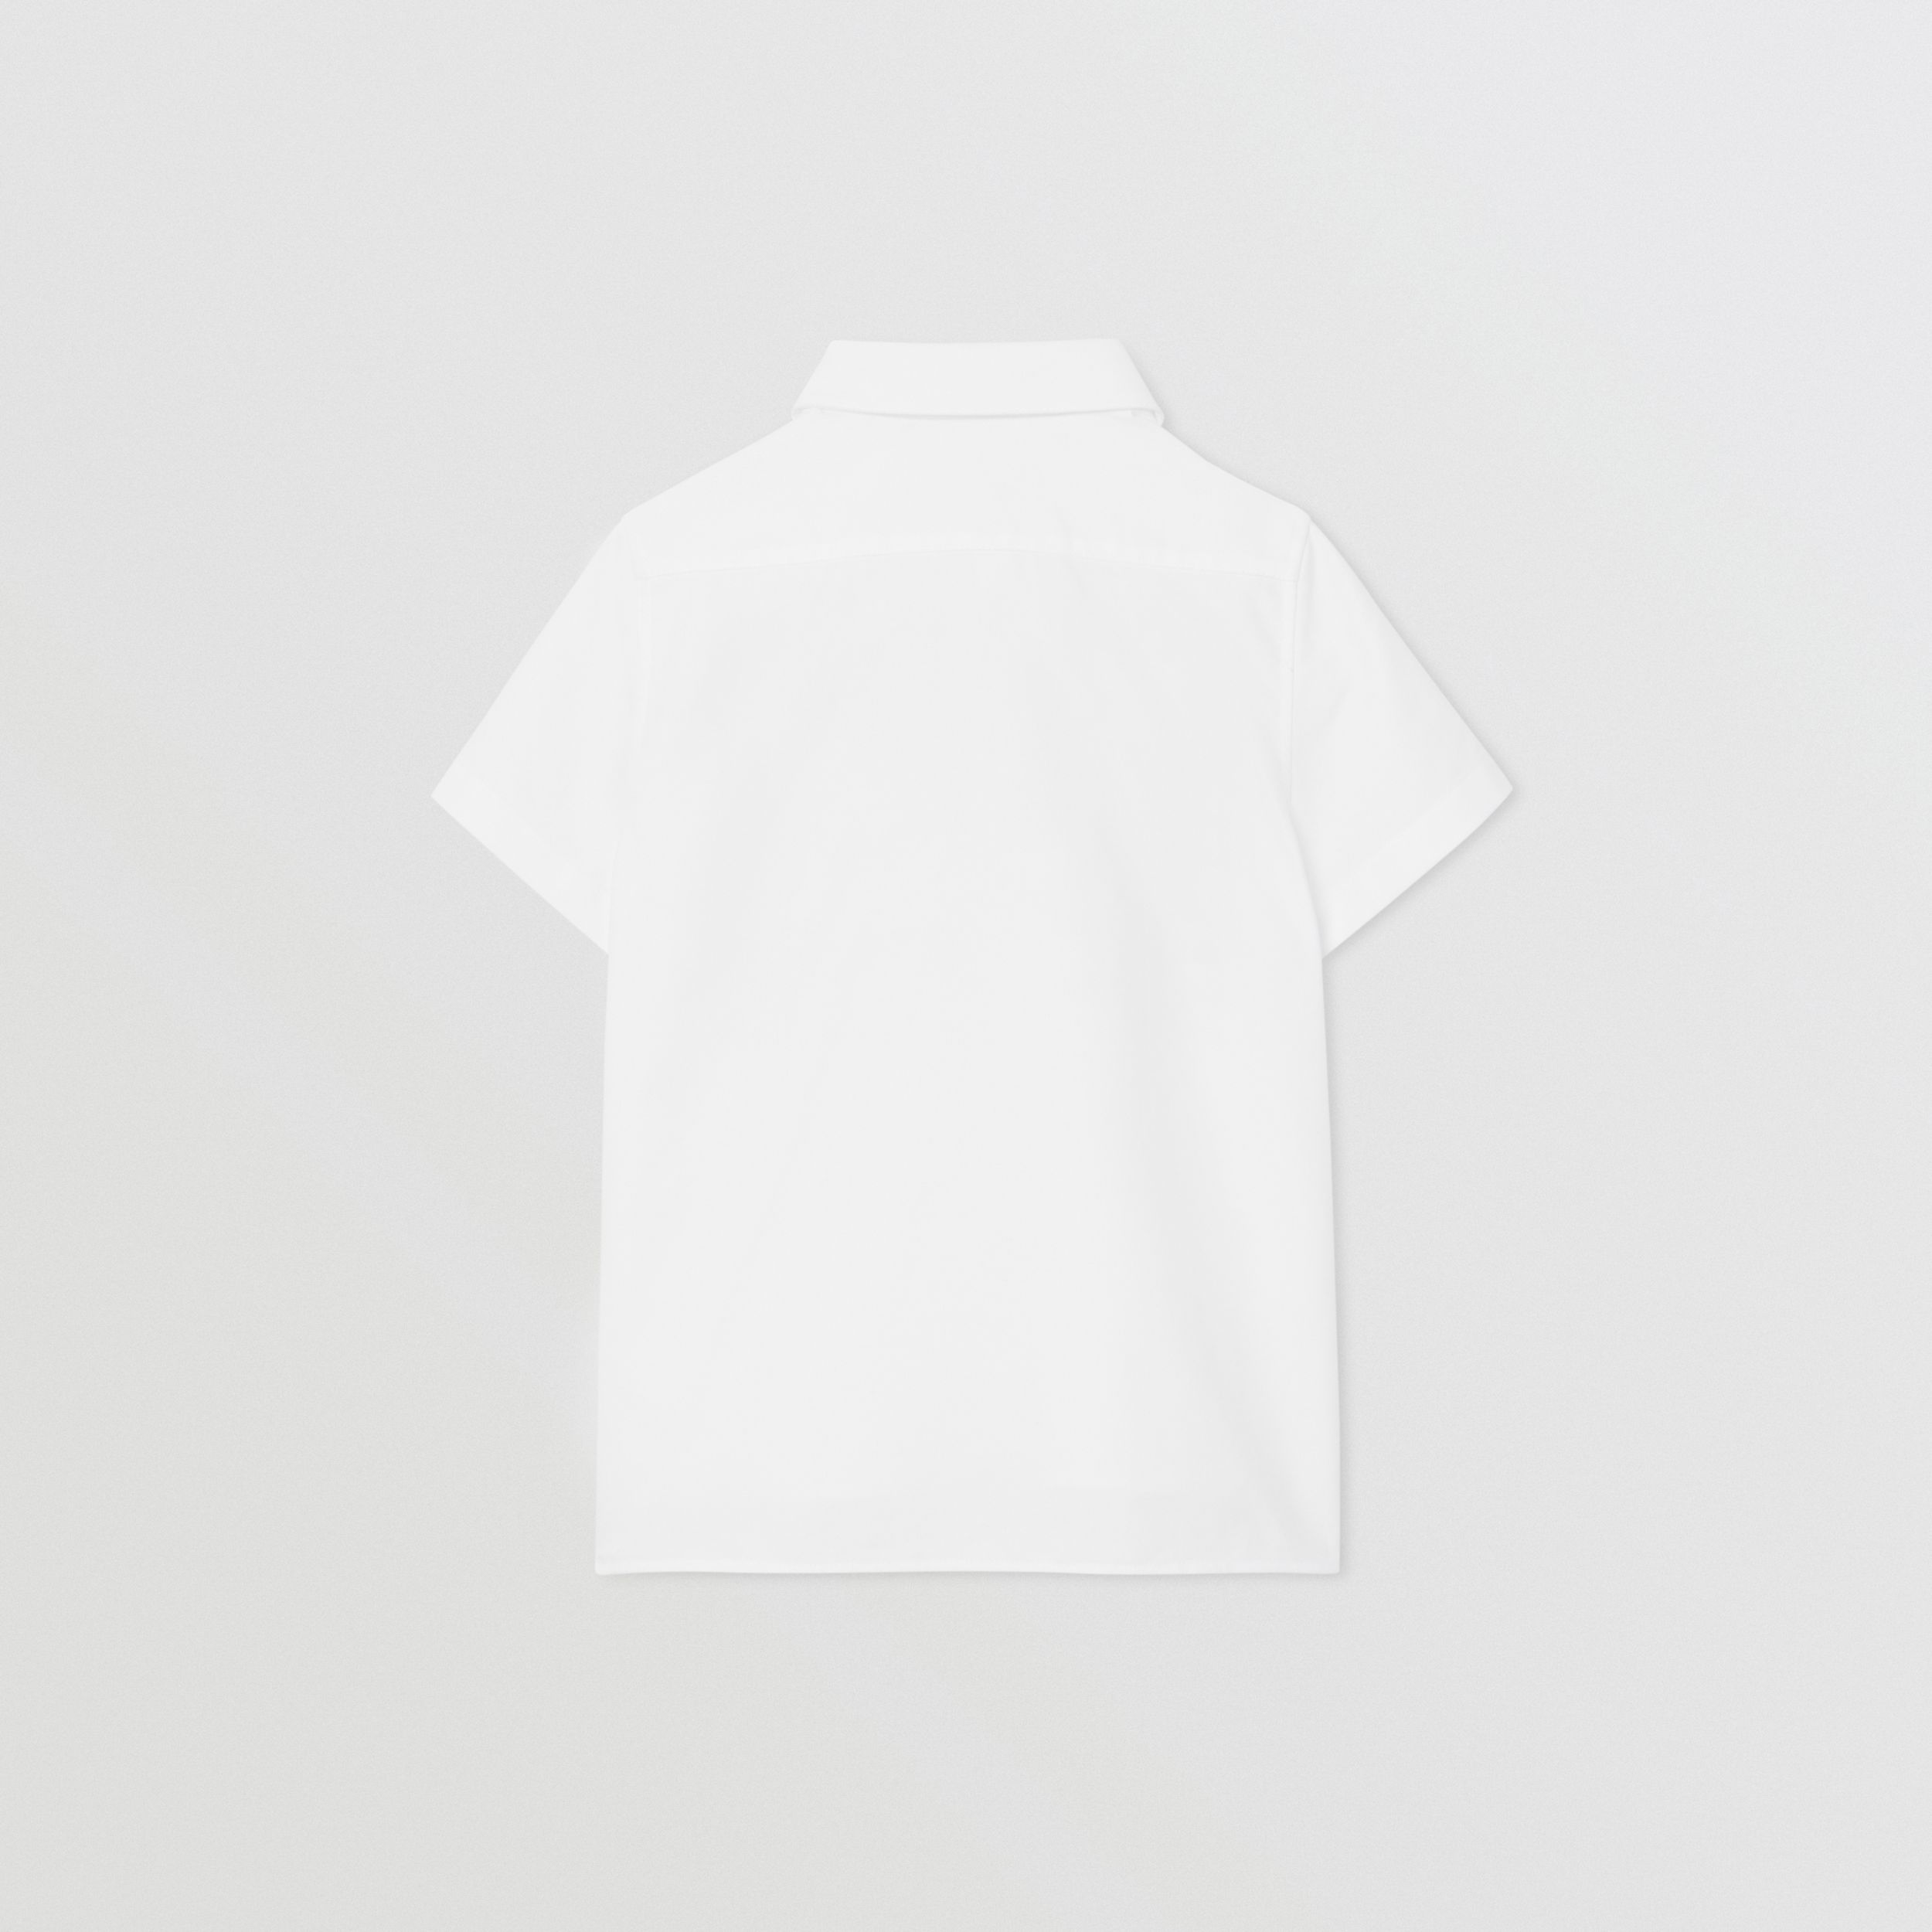 Short-sleeve Logo Print Cotton Oxford Shirt in White - Children | Burberry - 4